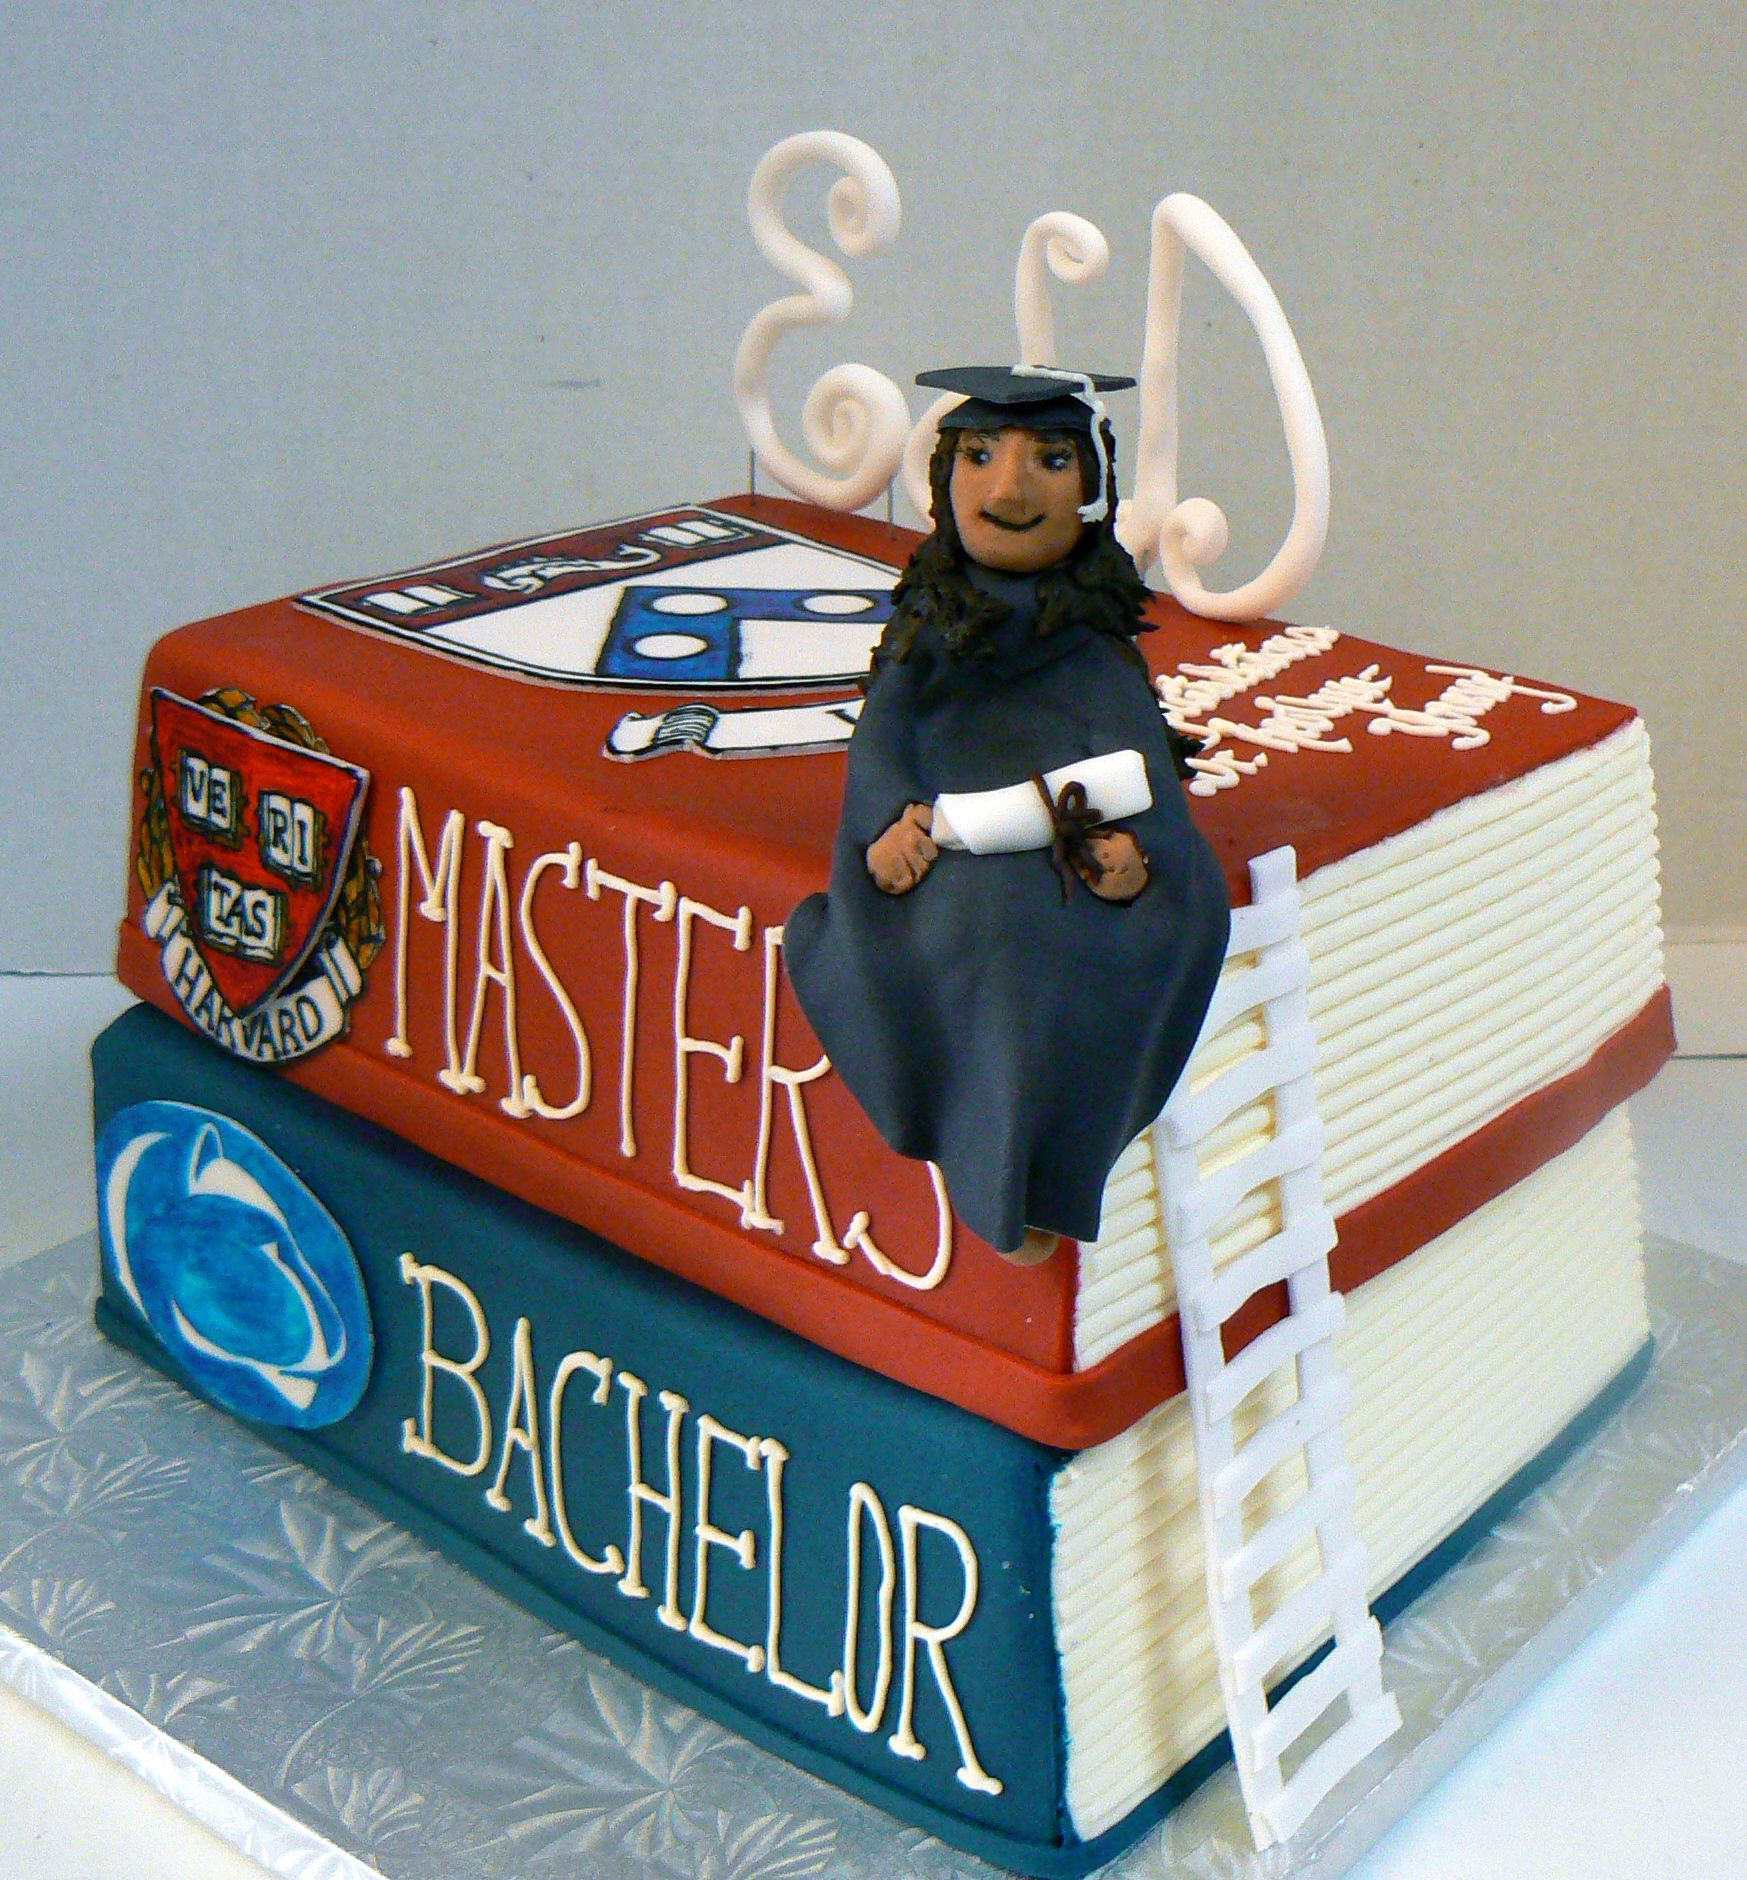 Doctorate Masters Bachelors Graduation Cake With Images